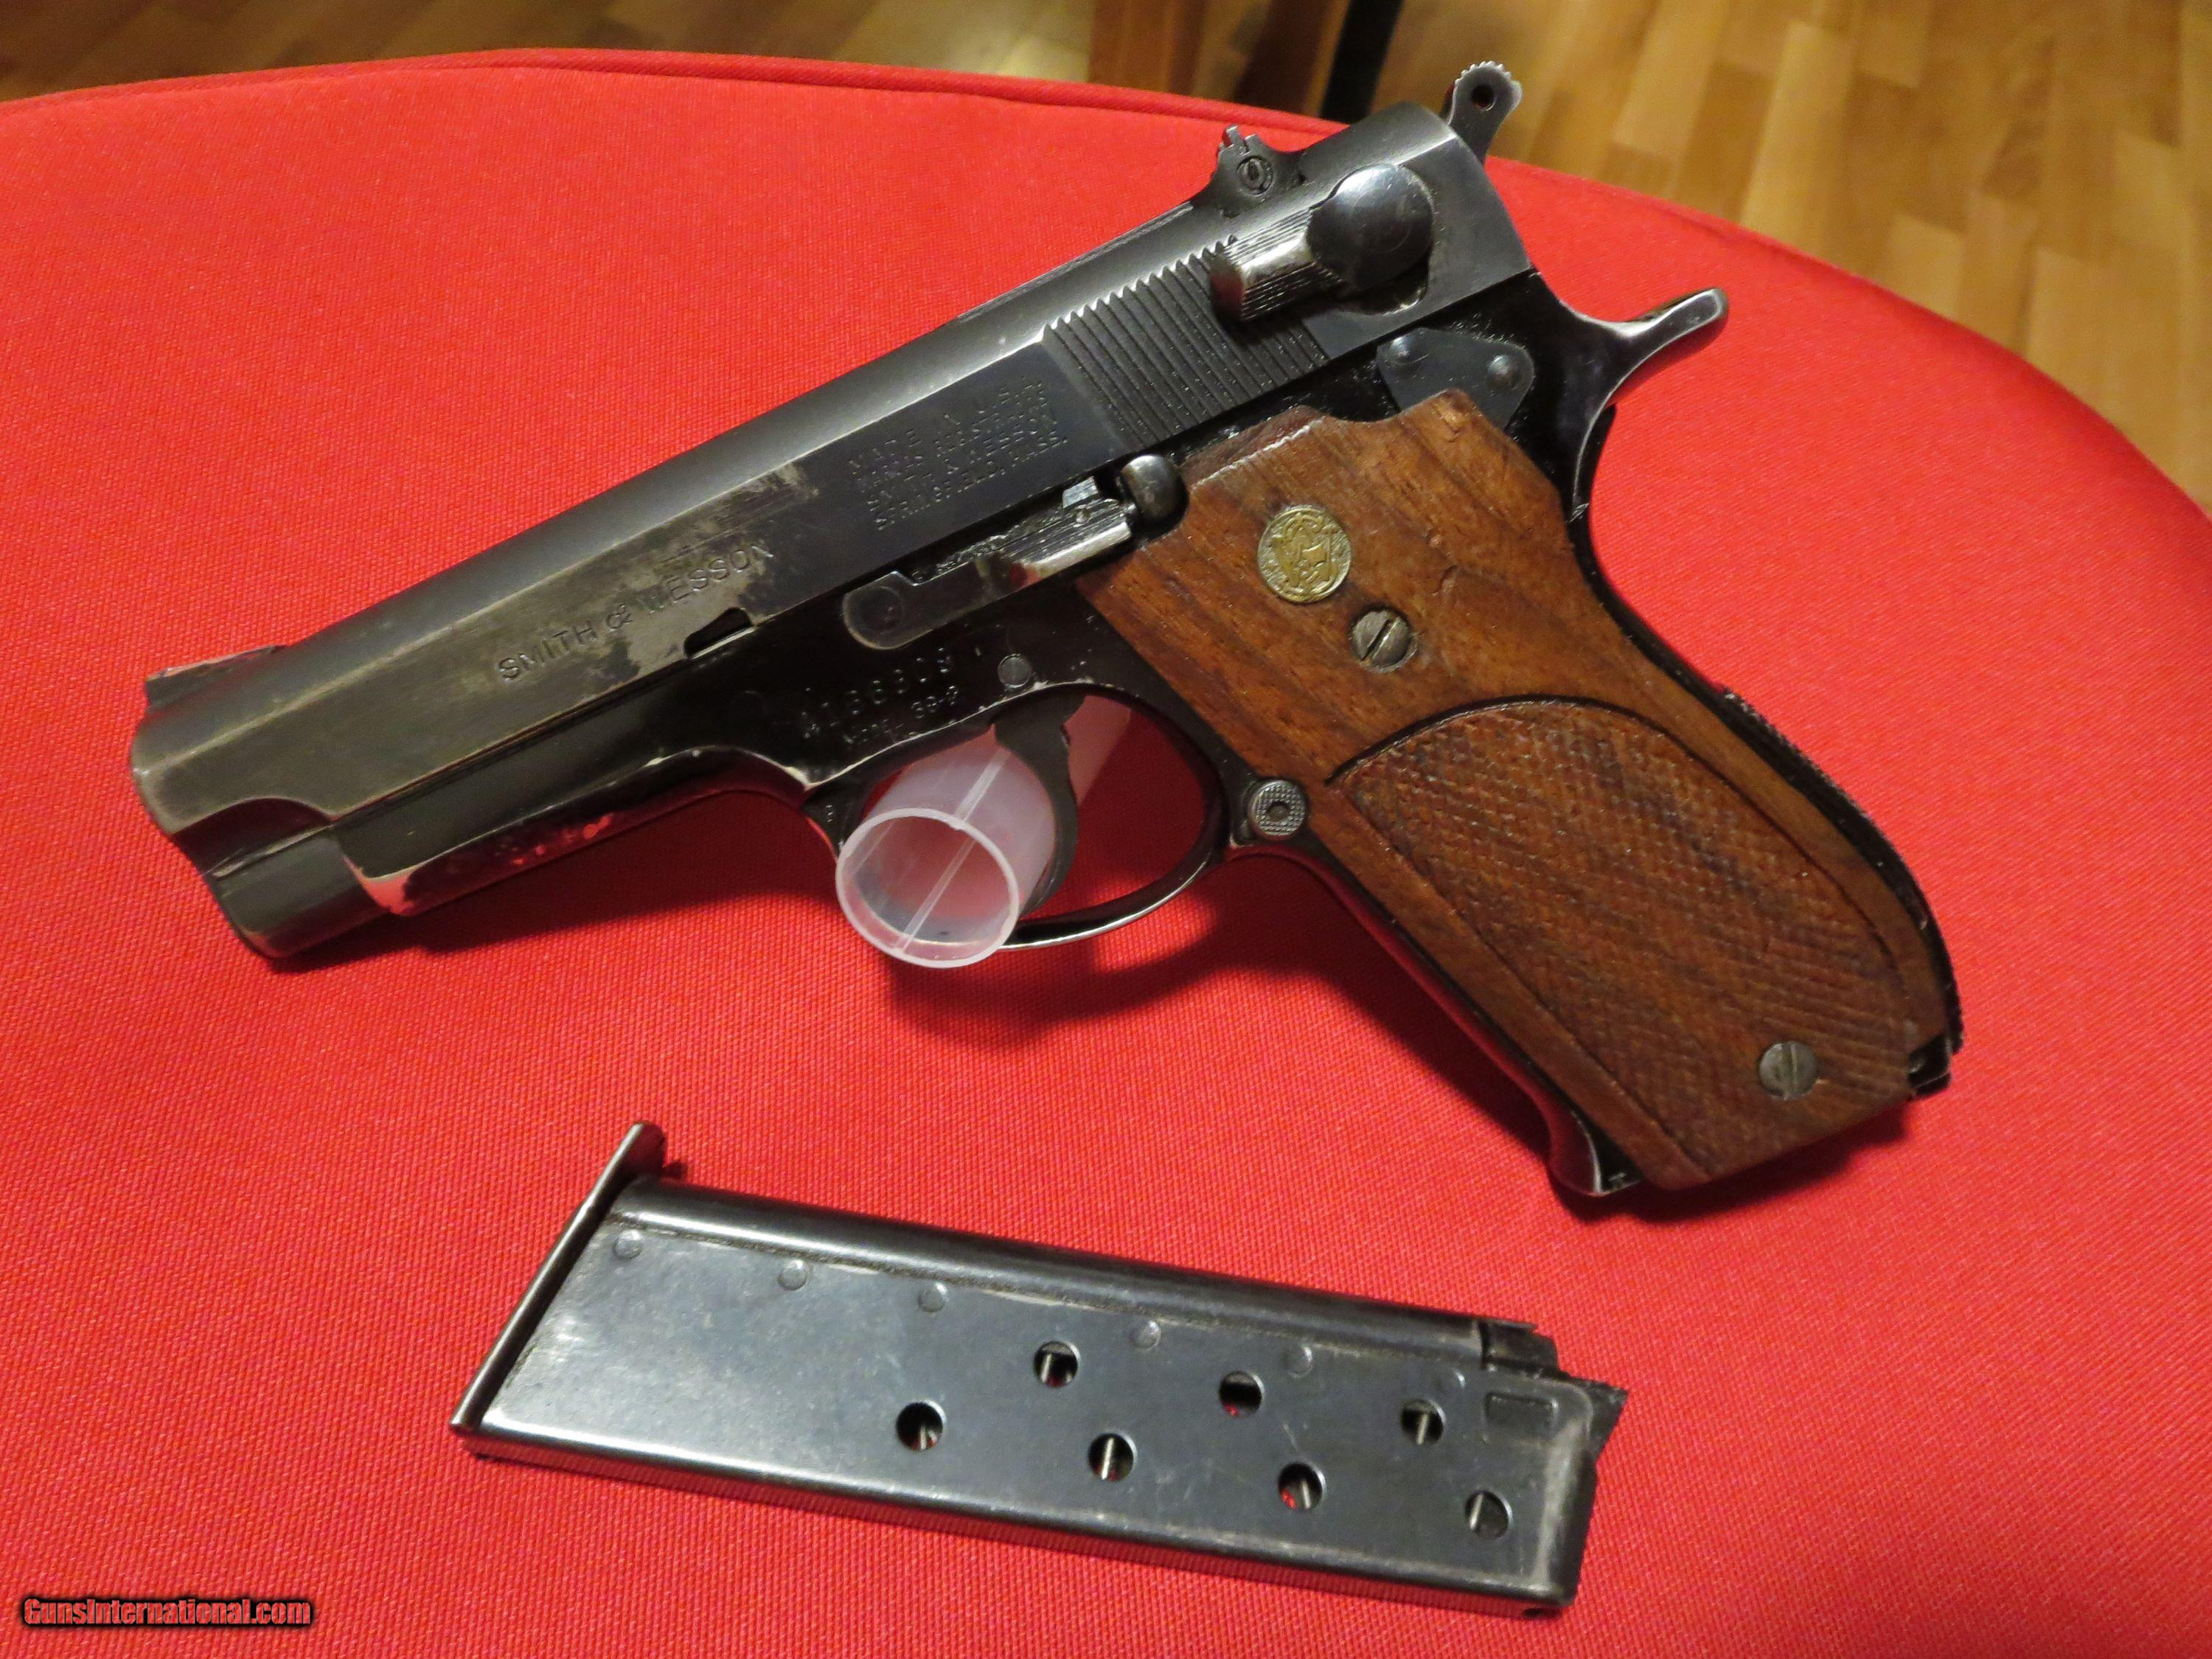 39 Best Images About South Pacific On Pinterest: 1973 S&W Model 39-2 Semi-auto Pistol, 9mm, 8 Rnd Mag